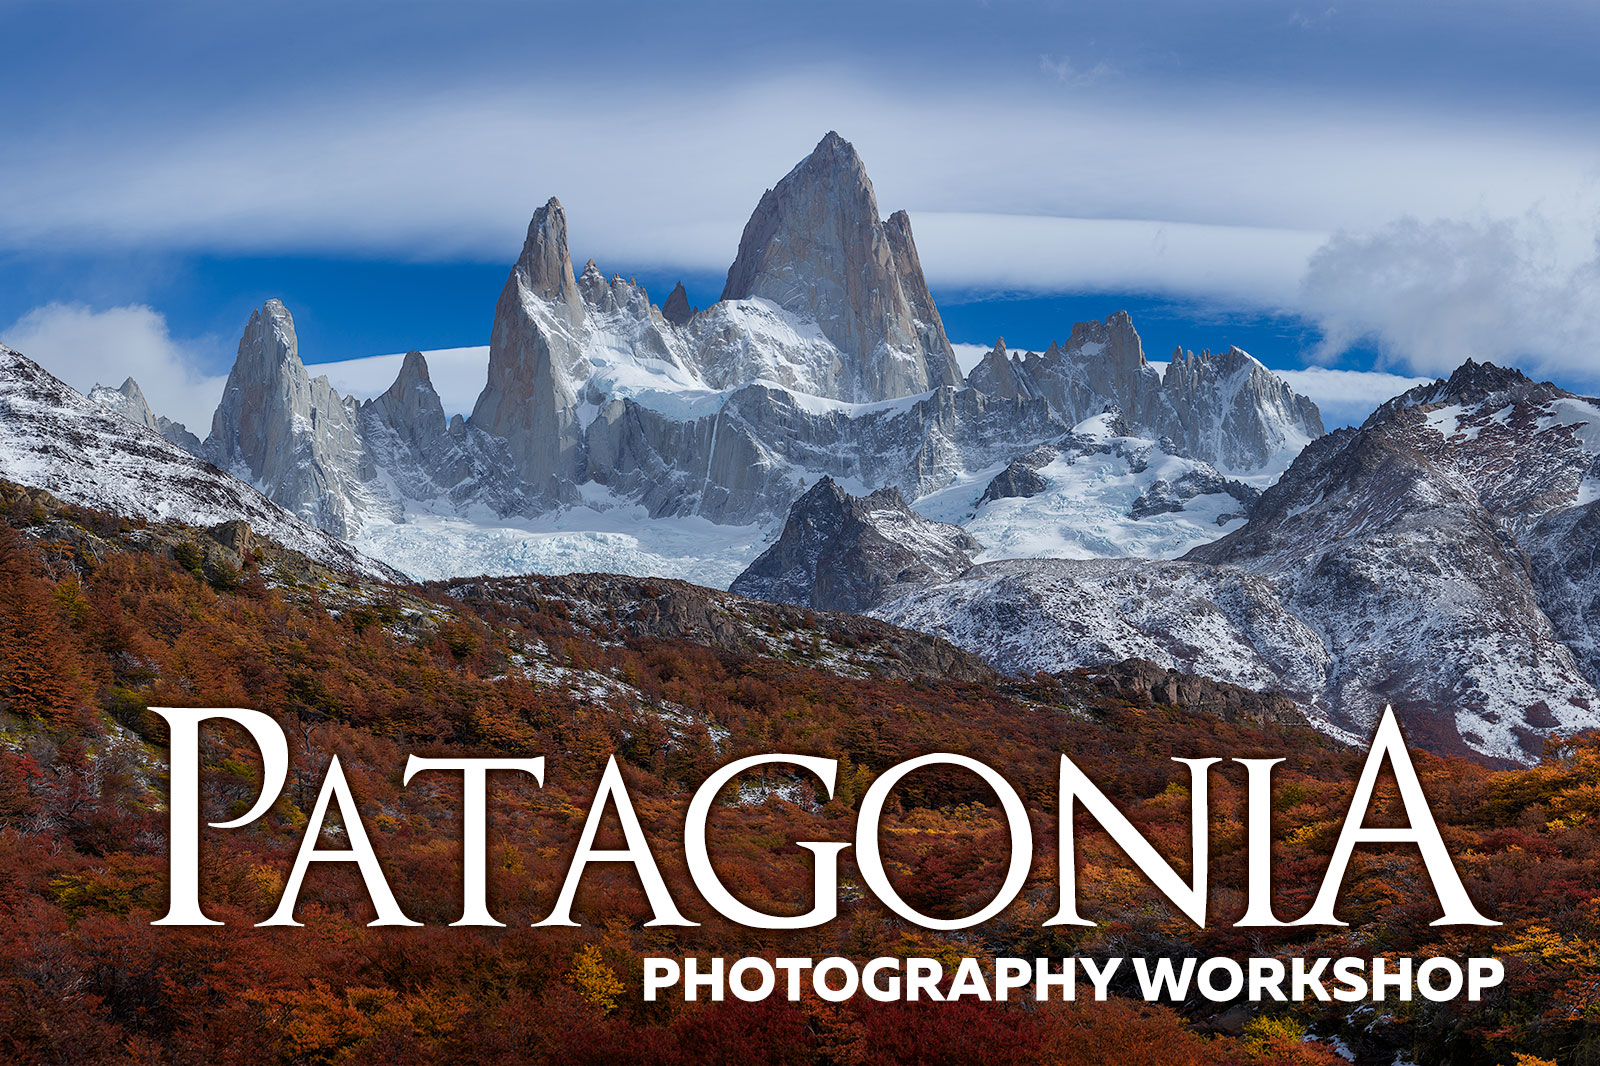 Patagonia Photography Workshop Photo Tour